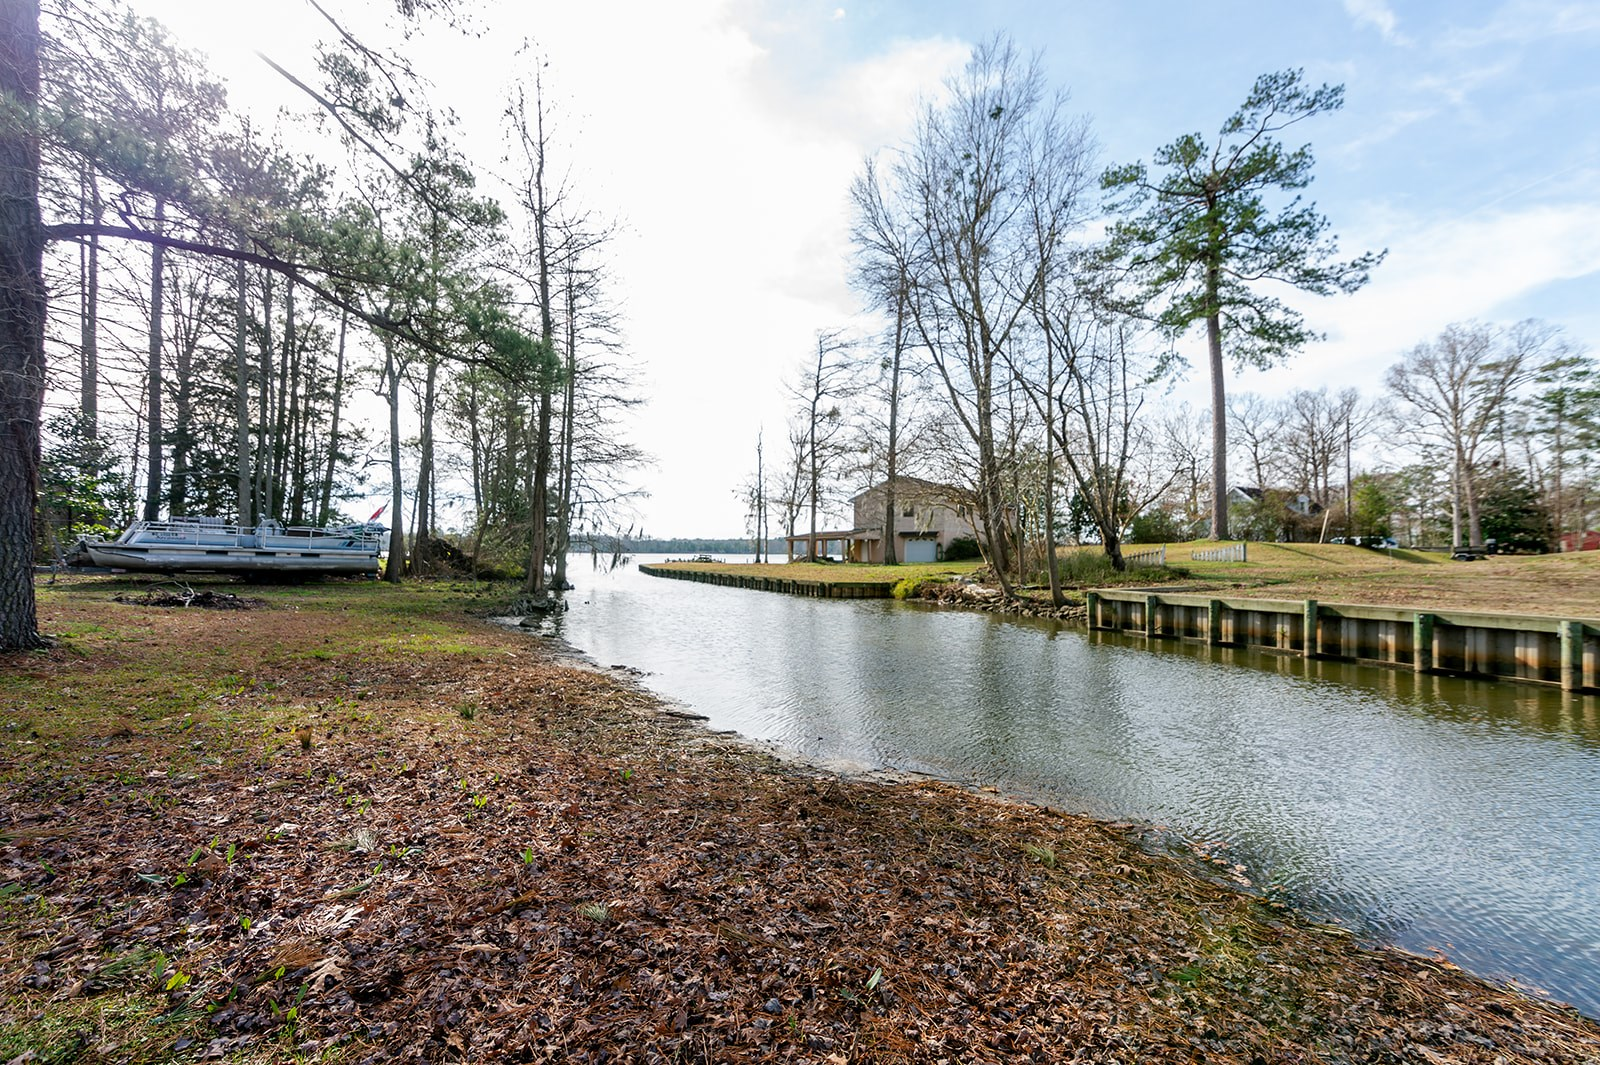 Canal Front home located in Hertford North Carolina